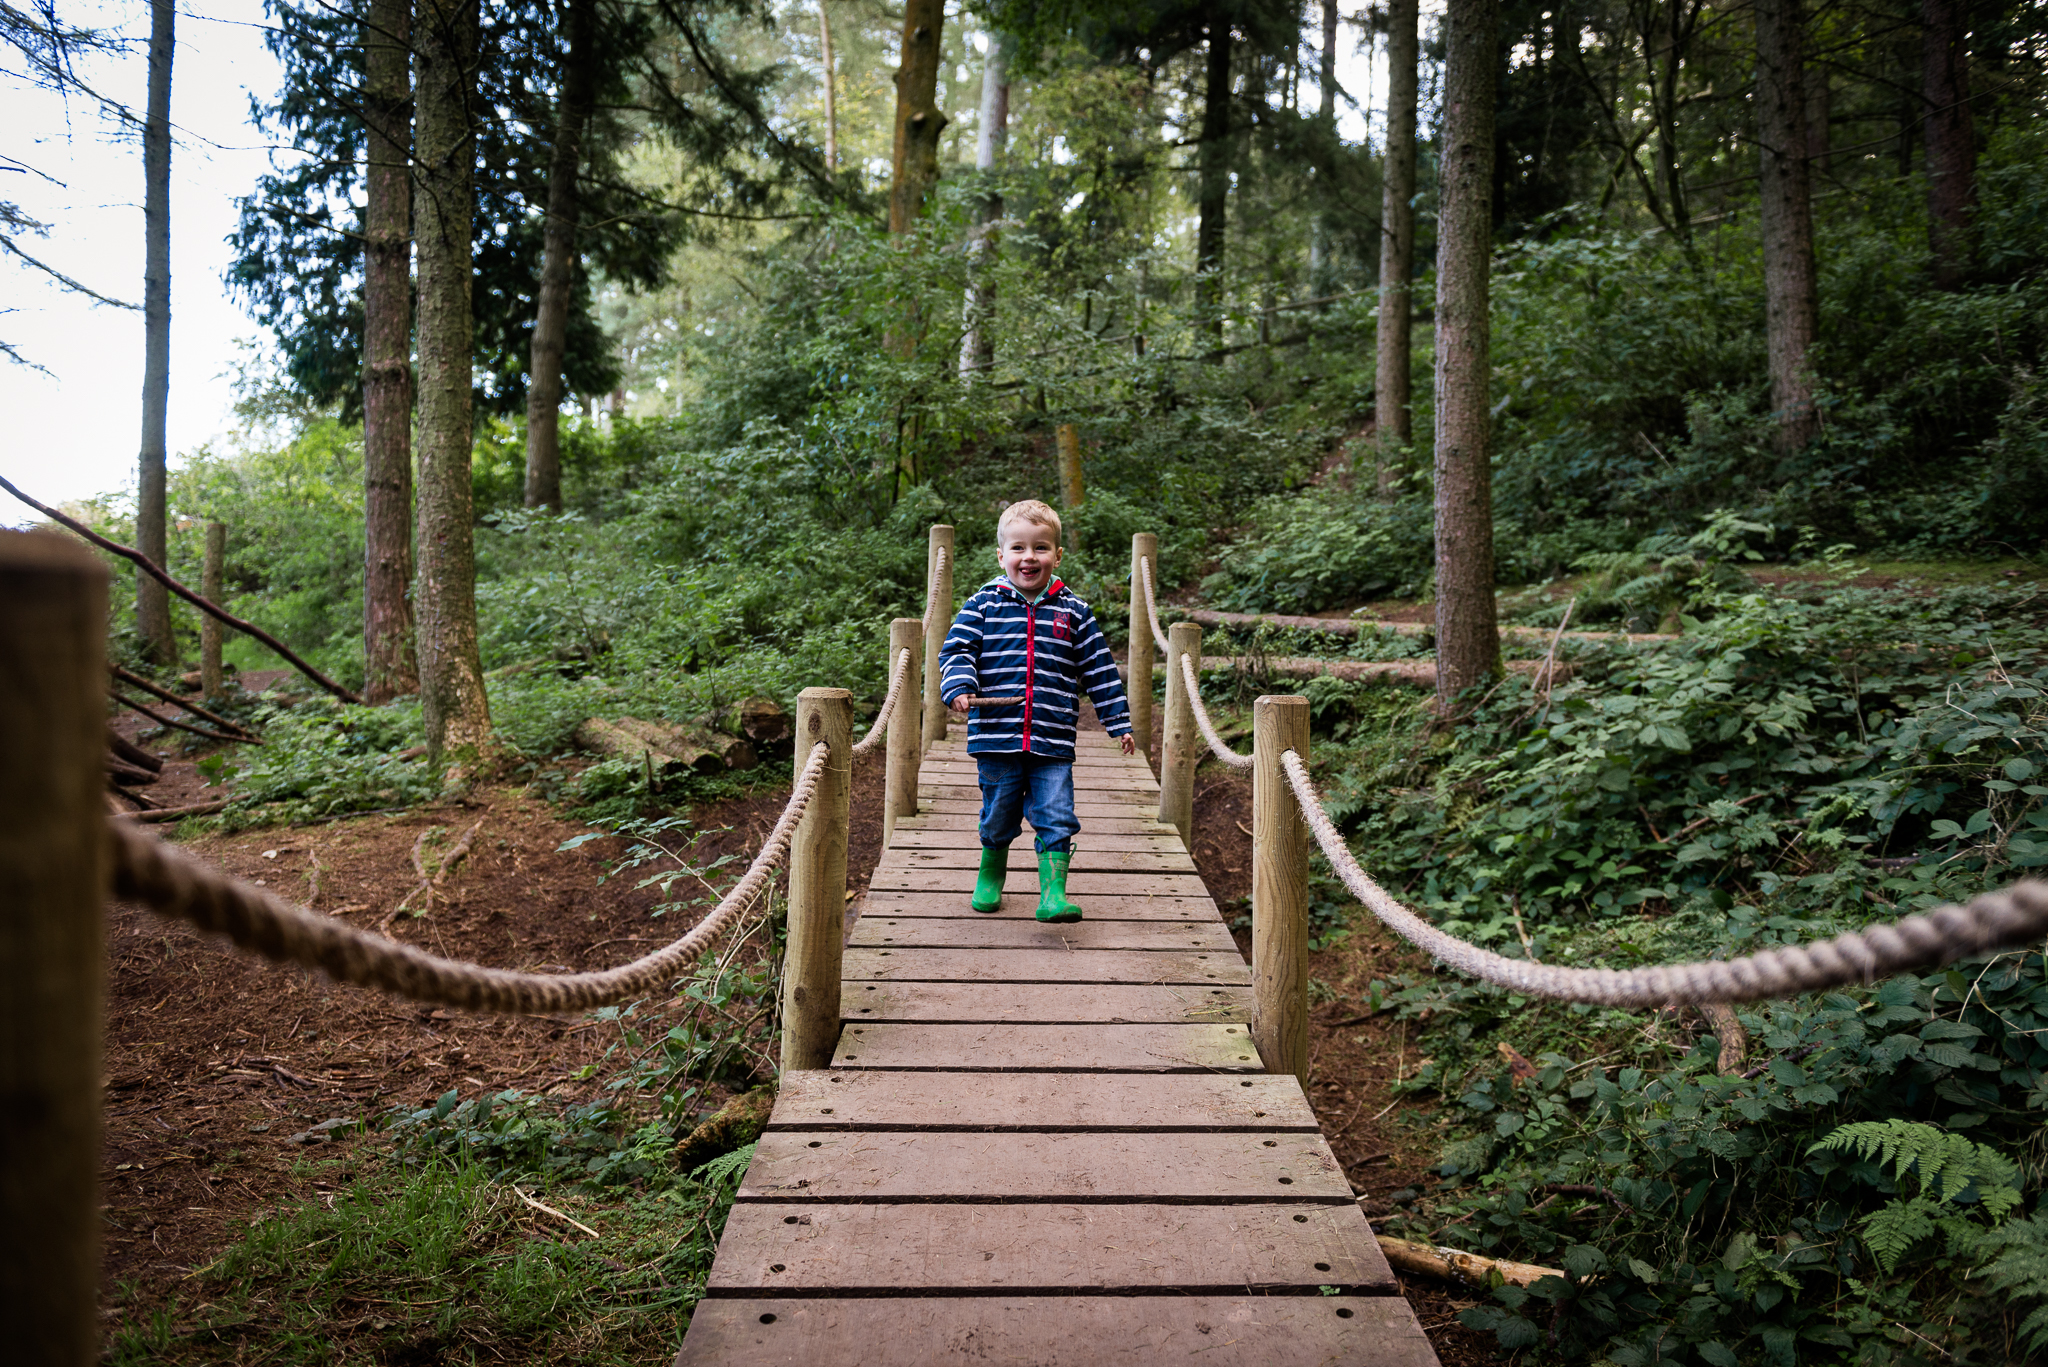 Documentary Family Photography at Clent Hills, Worcestershire Family Lifestyle Photography Woods Outdoors Trees Flying Kite - Jenny Harper-5.jpg